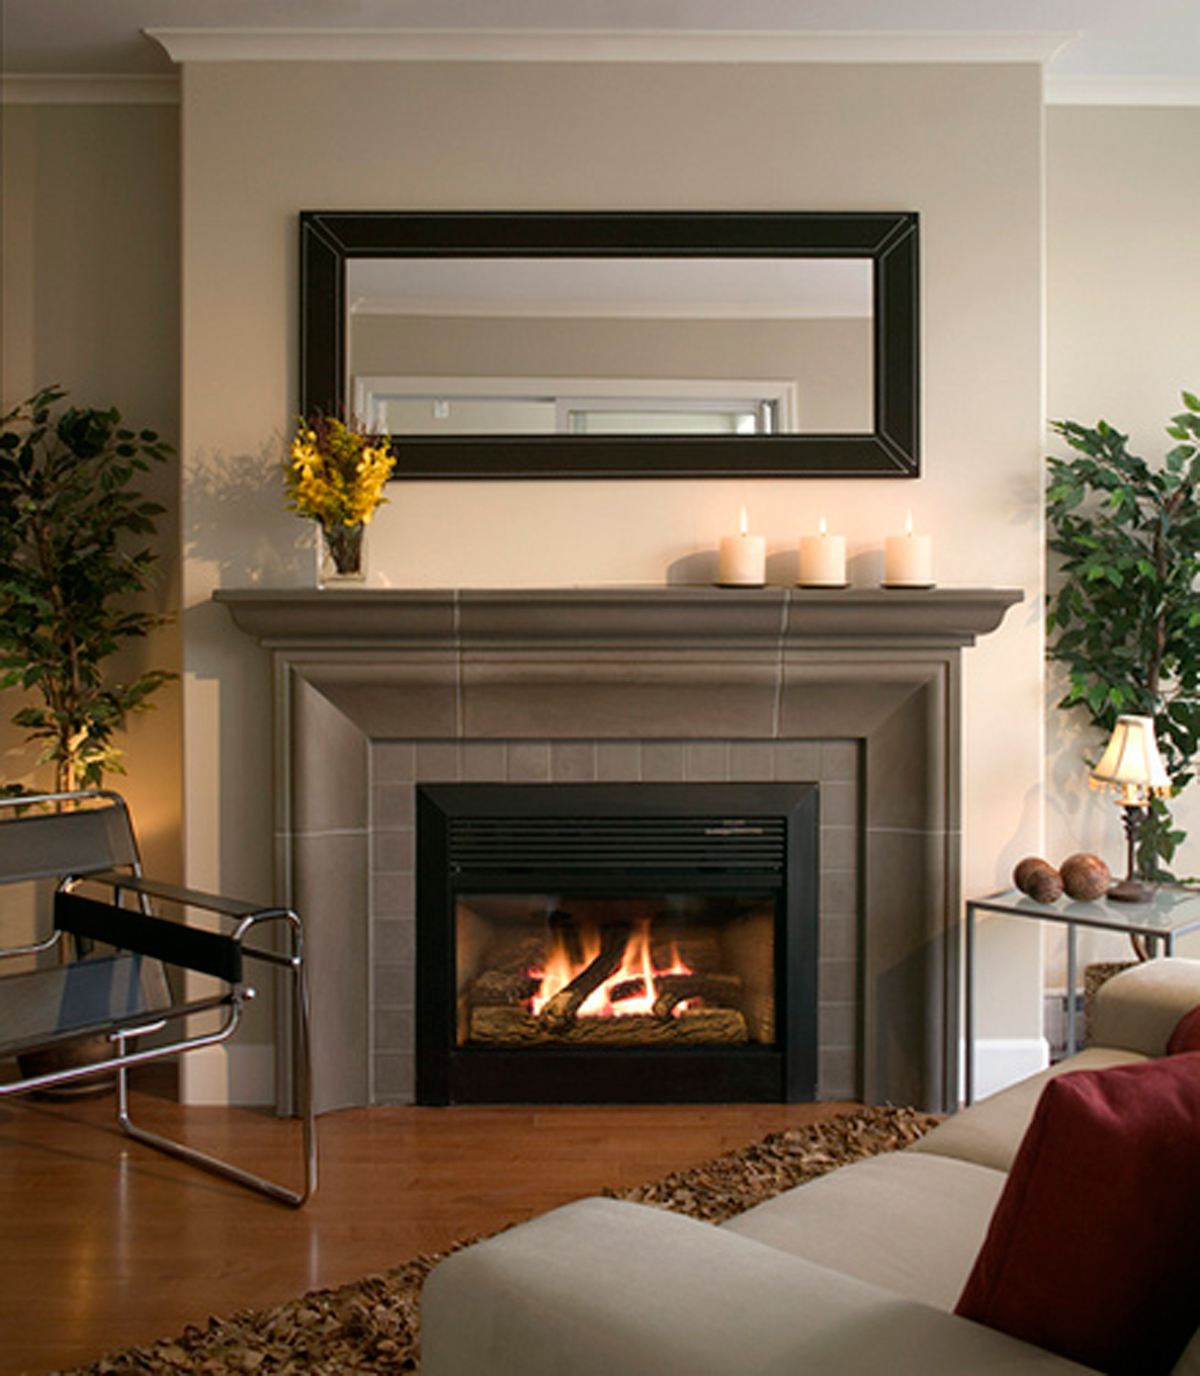 Design Fireplaces Contemporary Gas Fireplace Designs With Fascinating